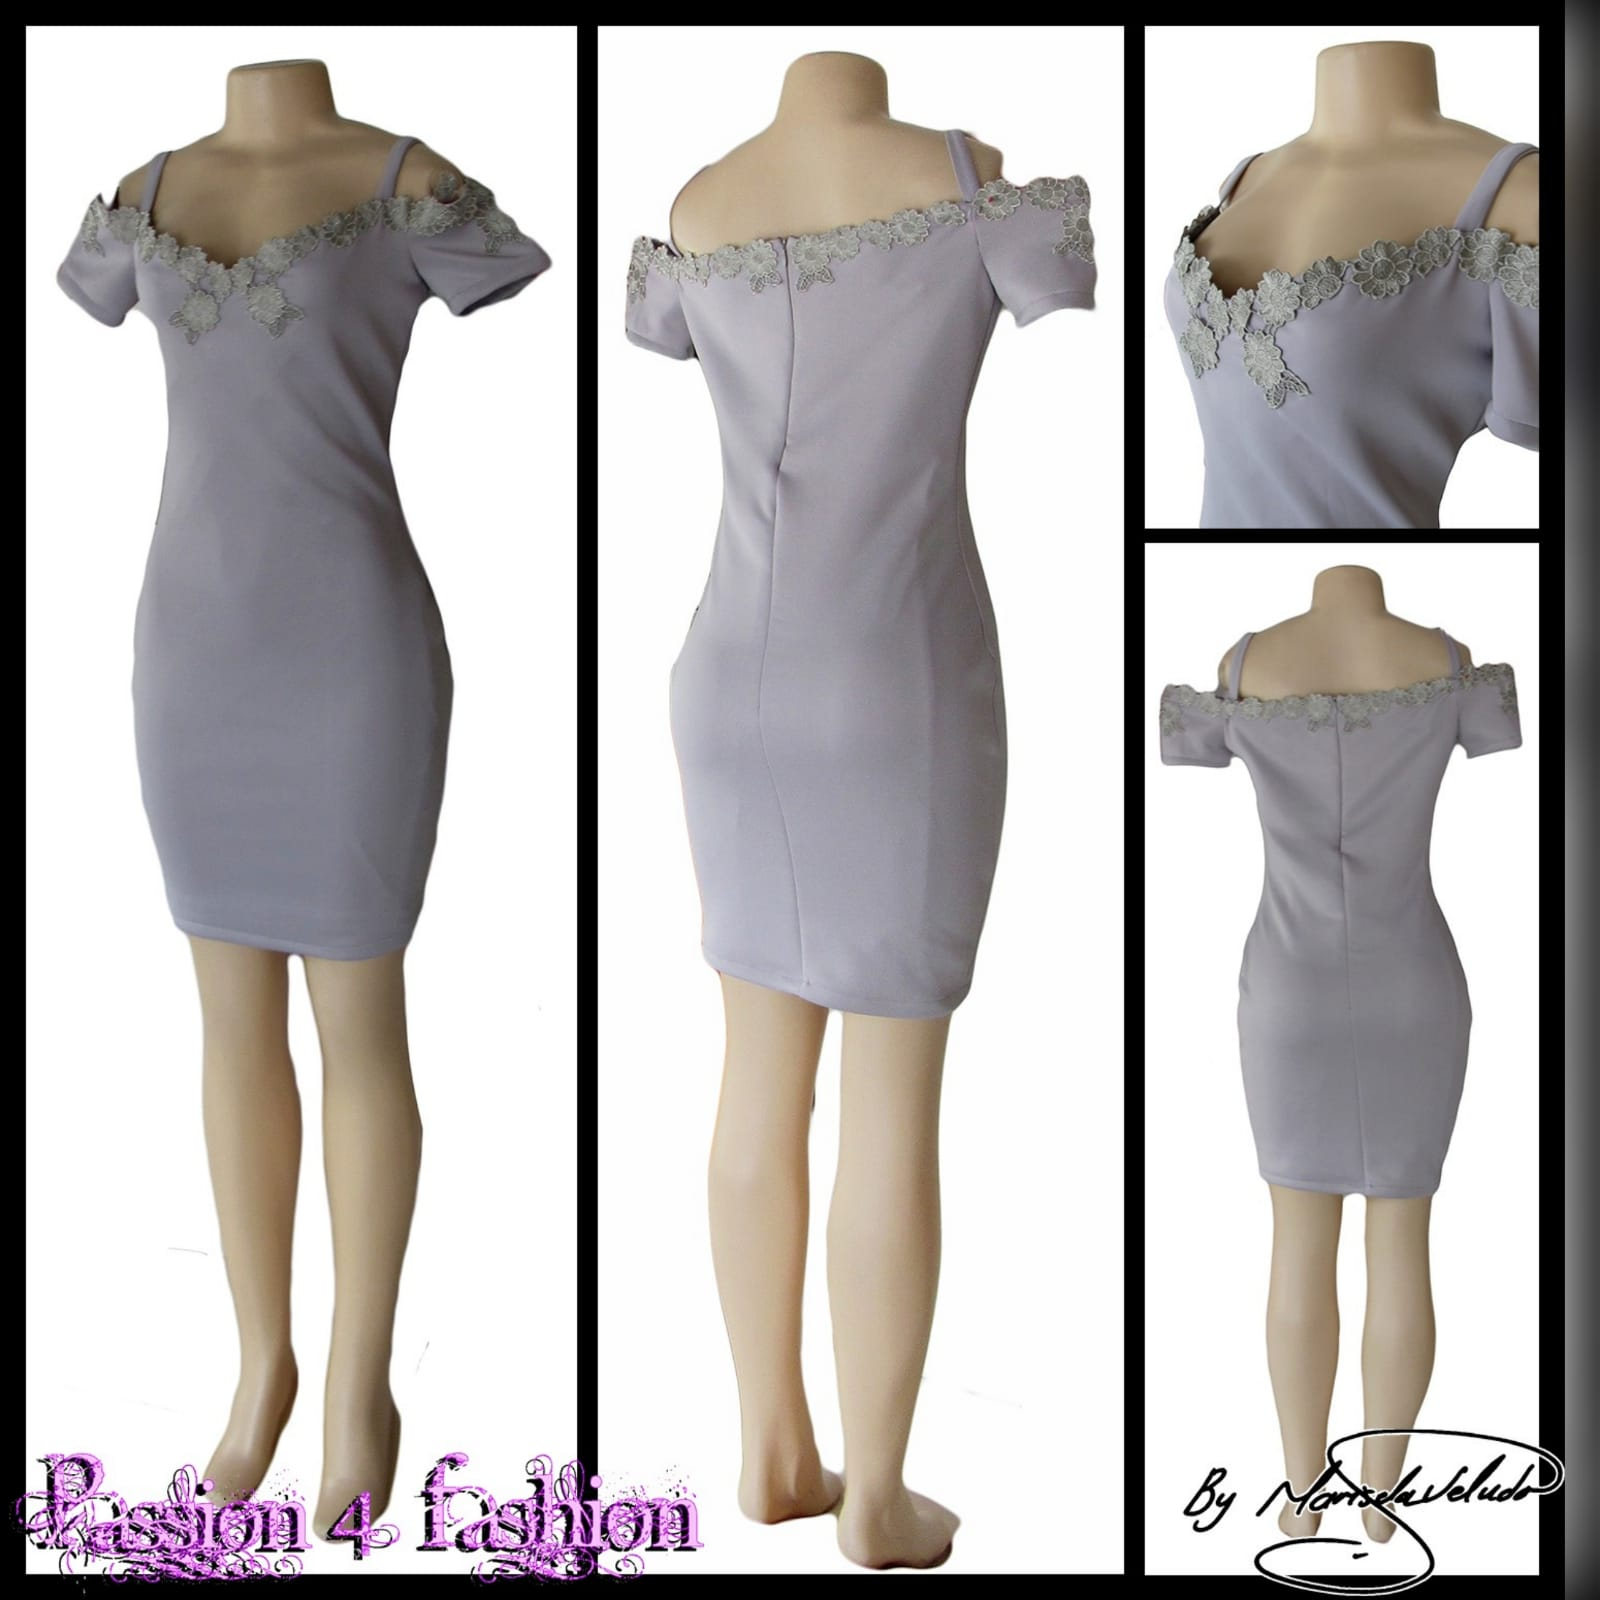 Light grey short fitted smart casual dress 5 light grey short fitted smart casual dress, with off shoulder shorter sleeves and shoulder straps. Neckline detailed with silver lace.